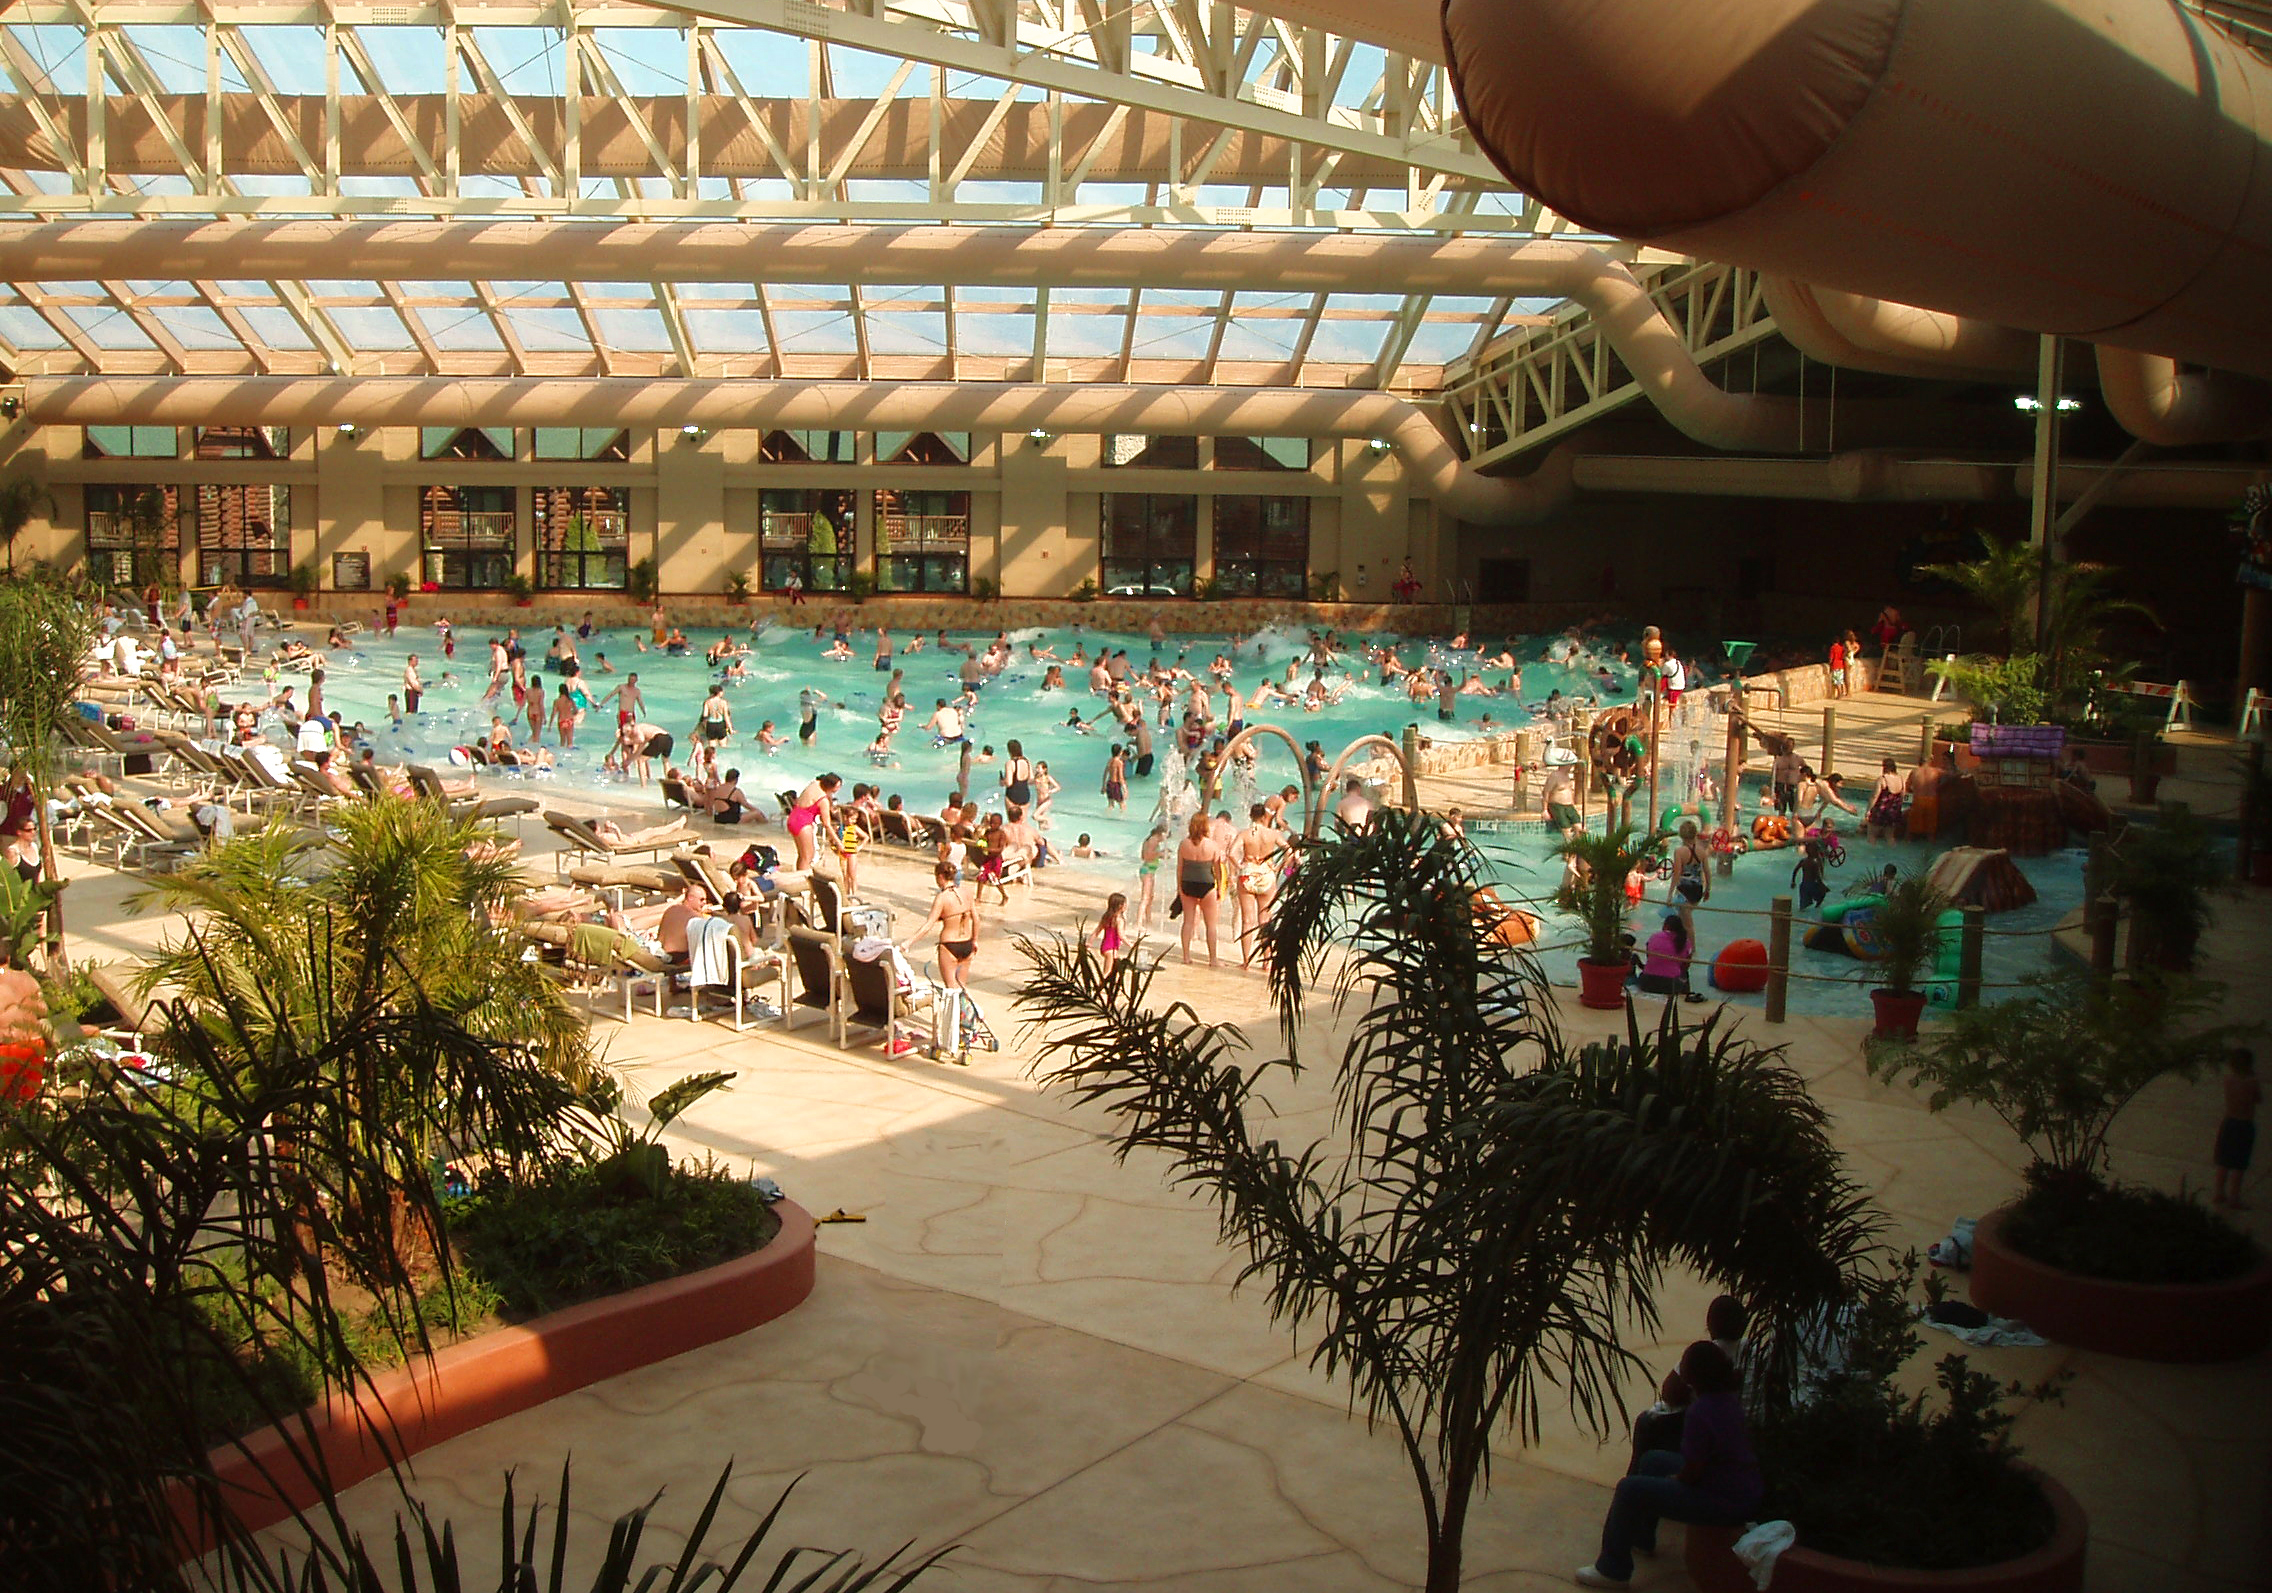 Cabin Fever Consider Visiting This Indoor Water Park Resort